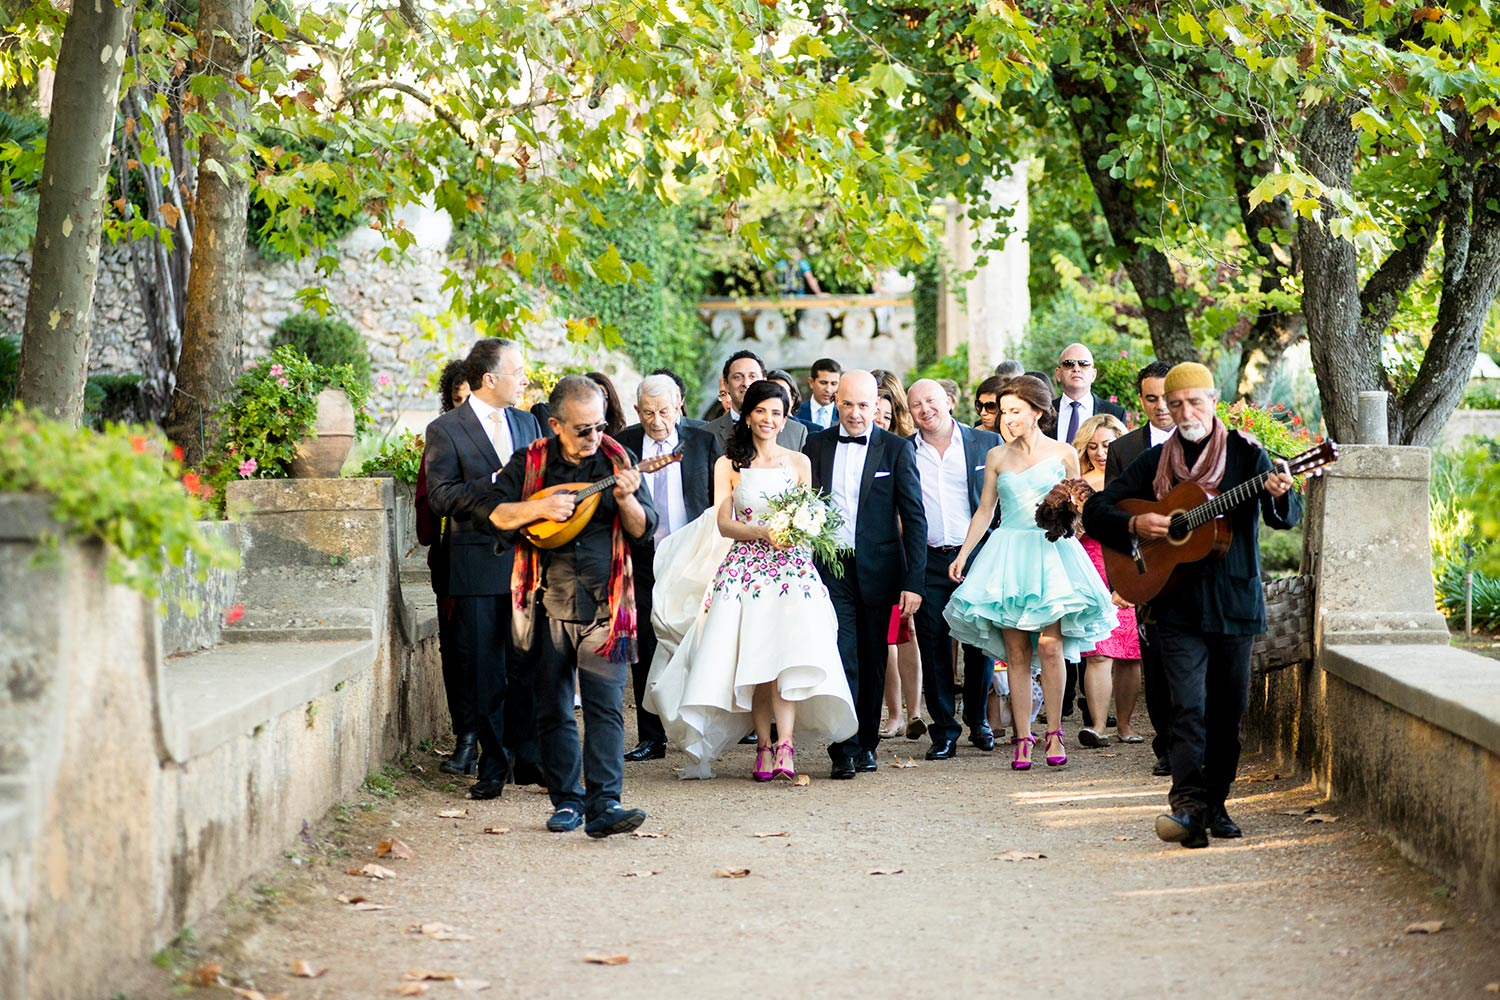 Typical Naples music duo wedding music